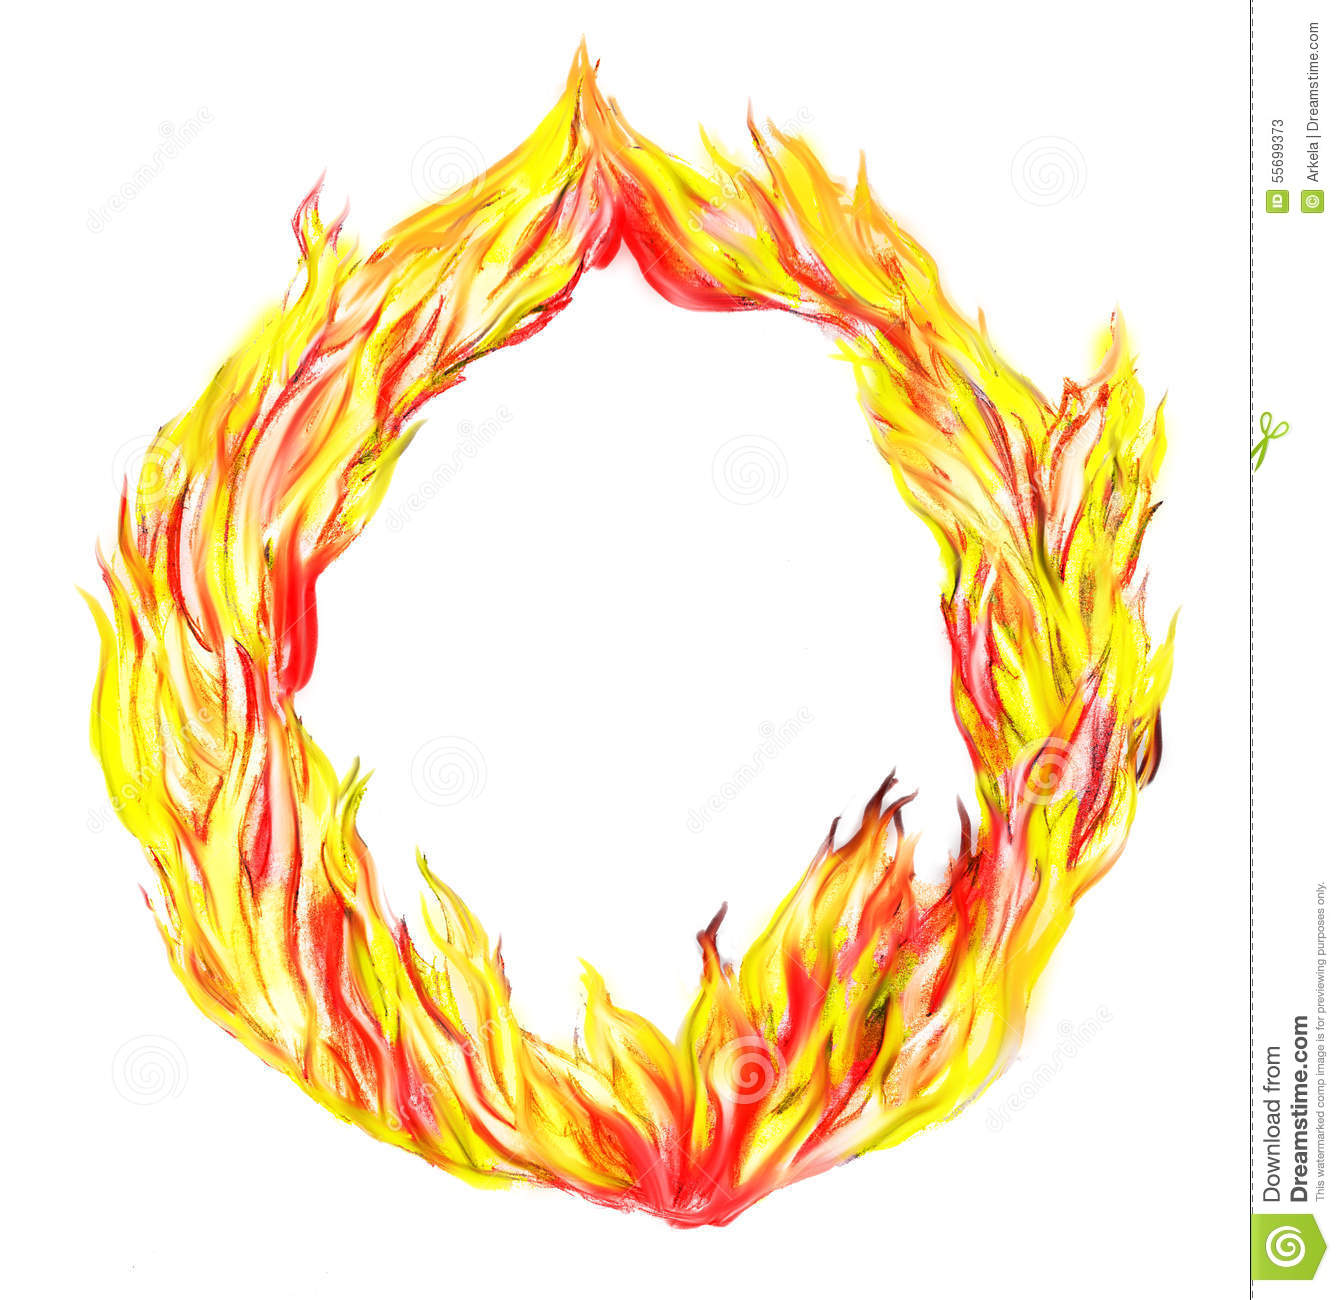 Fire circle stock illustration. Illustration of ring - 55699373 for Fire Lamp Clipart  584dqh